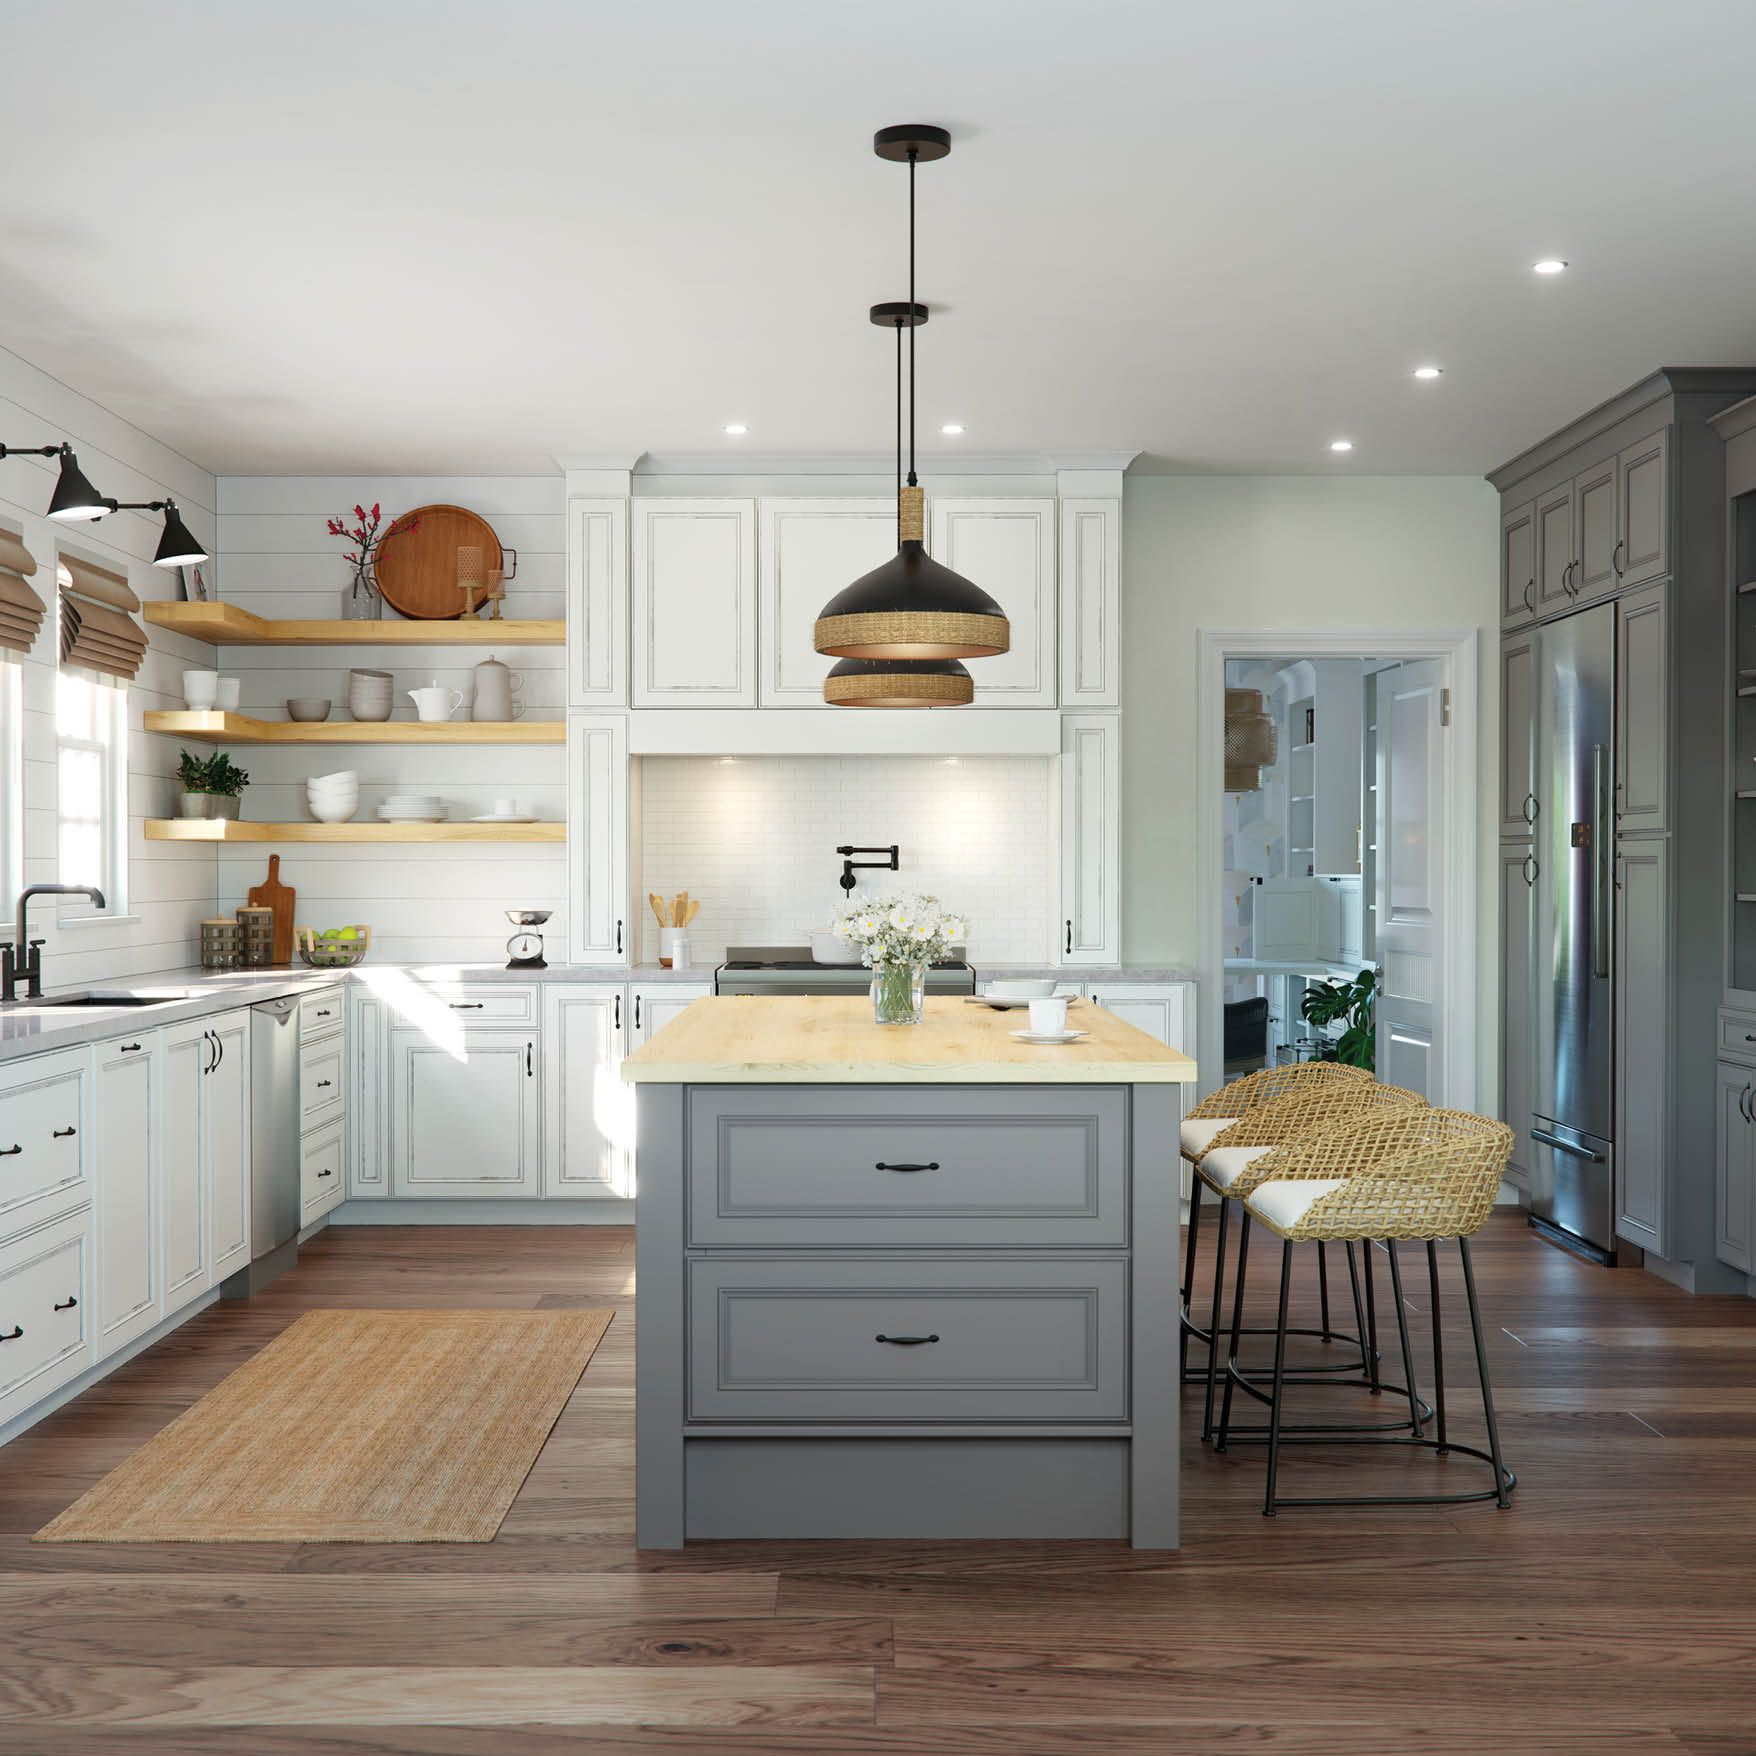 10 Things You Will Love About This Kitchen Kitchen Kitchen